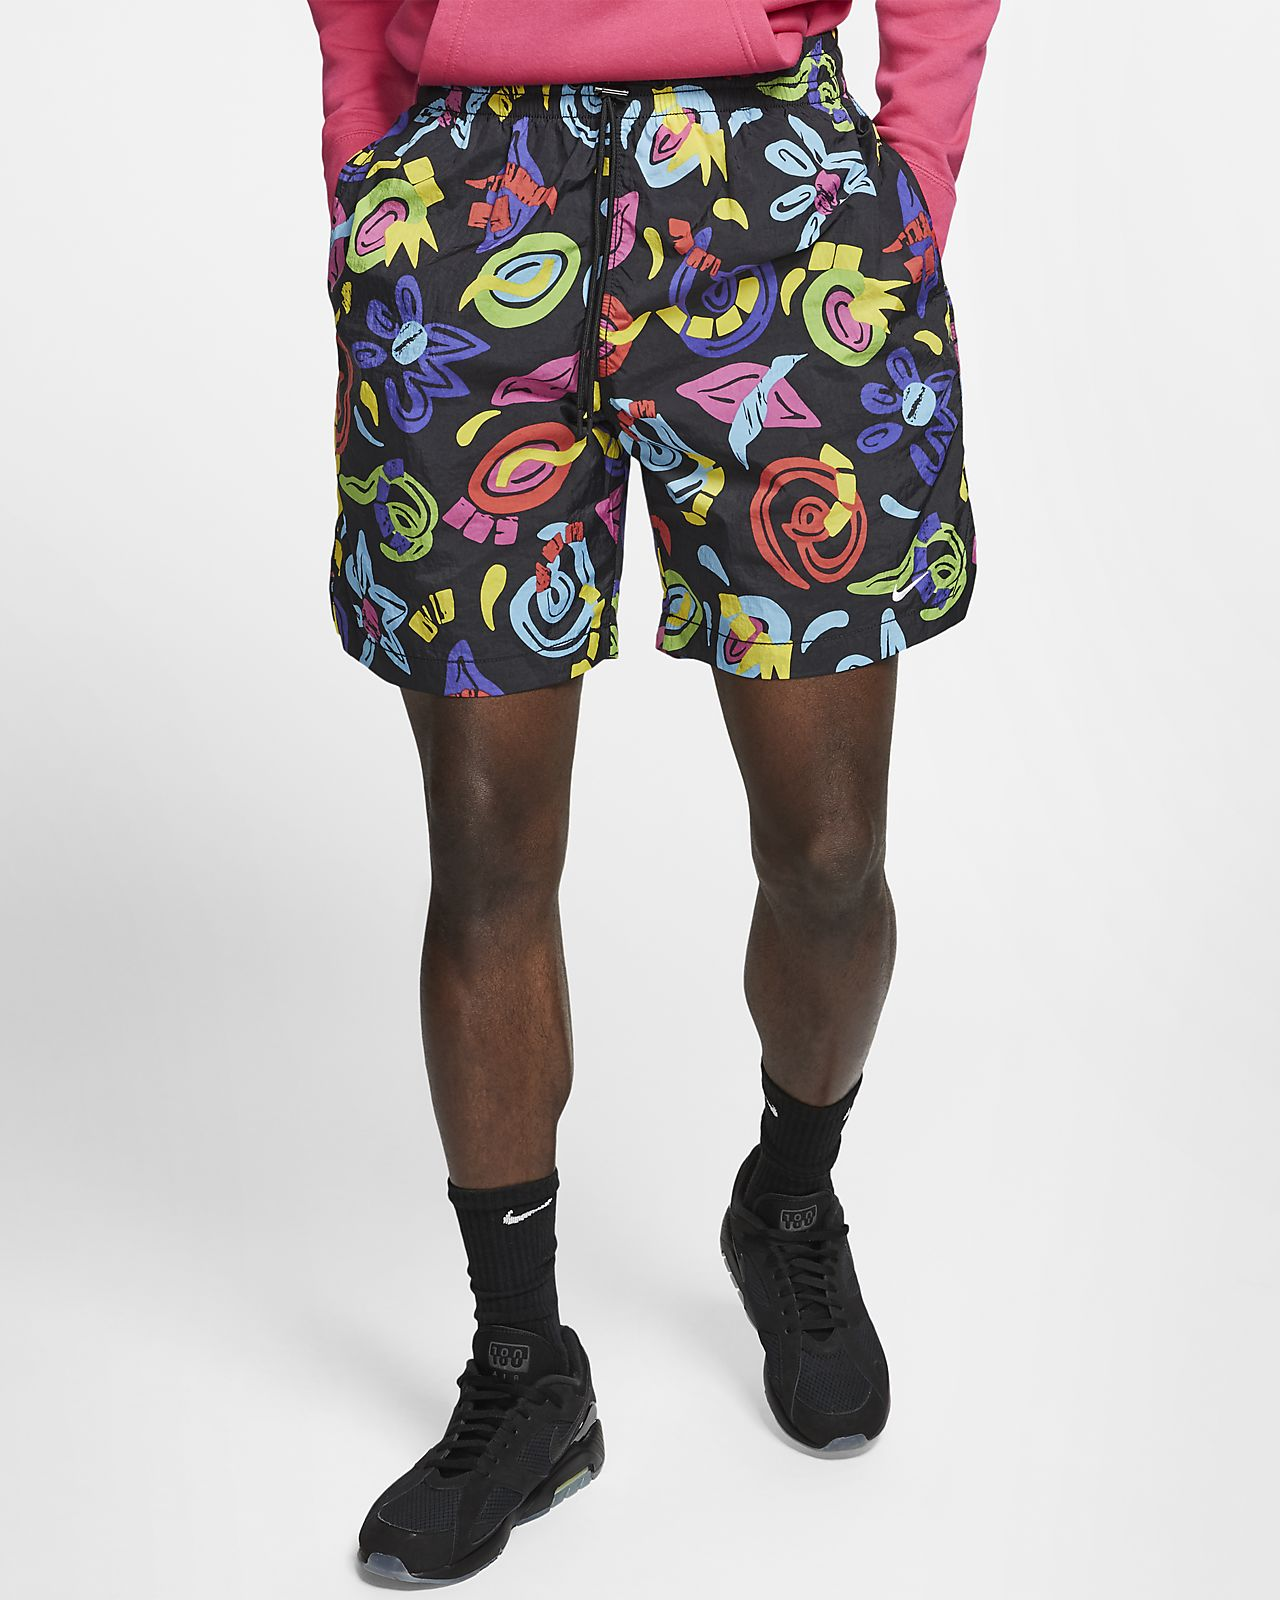 Shorts stampati NikeLab Collection - Uomo